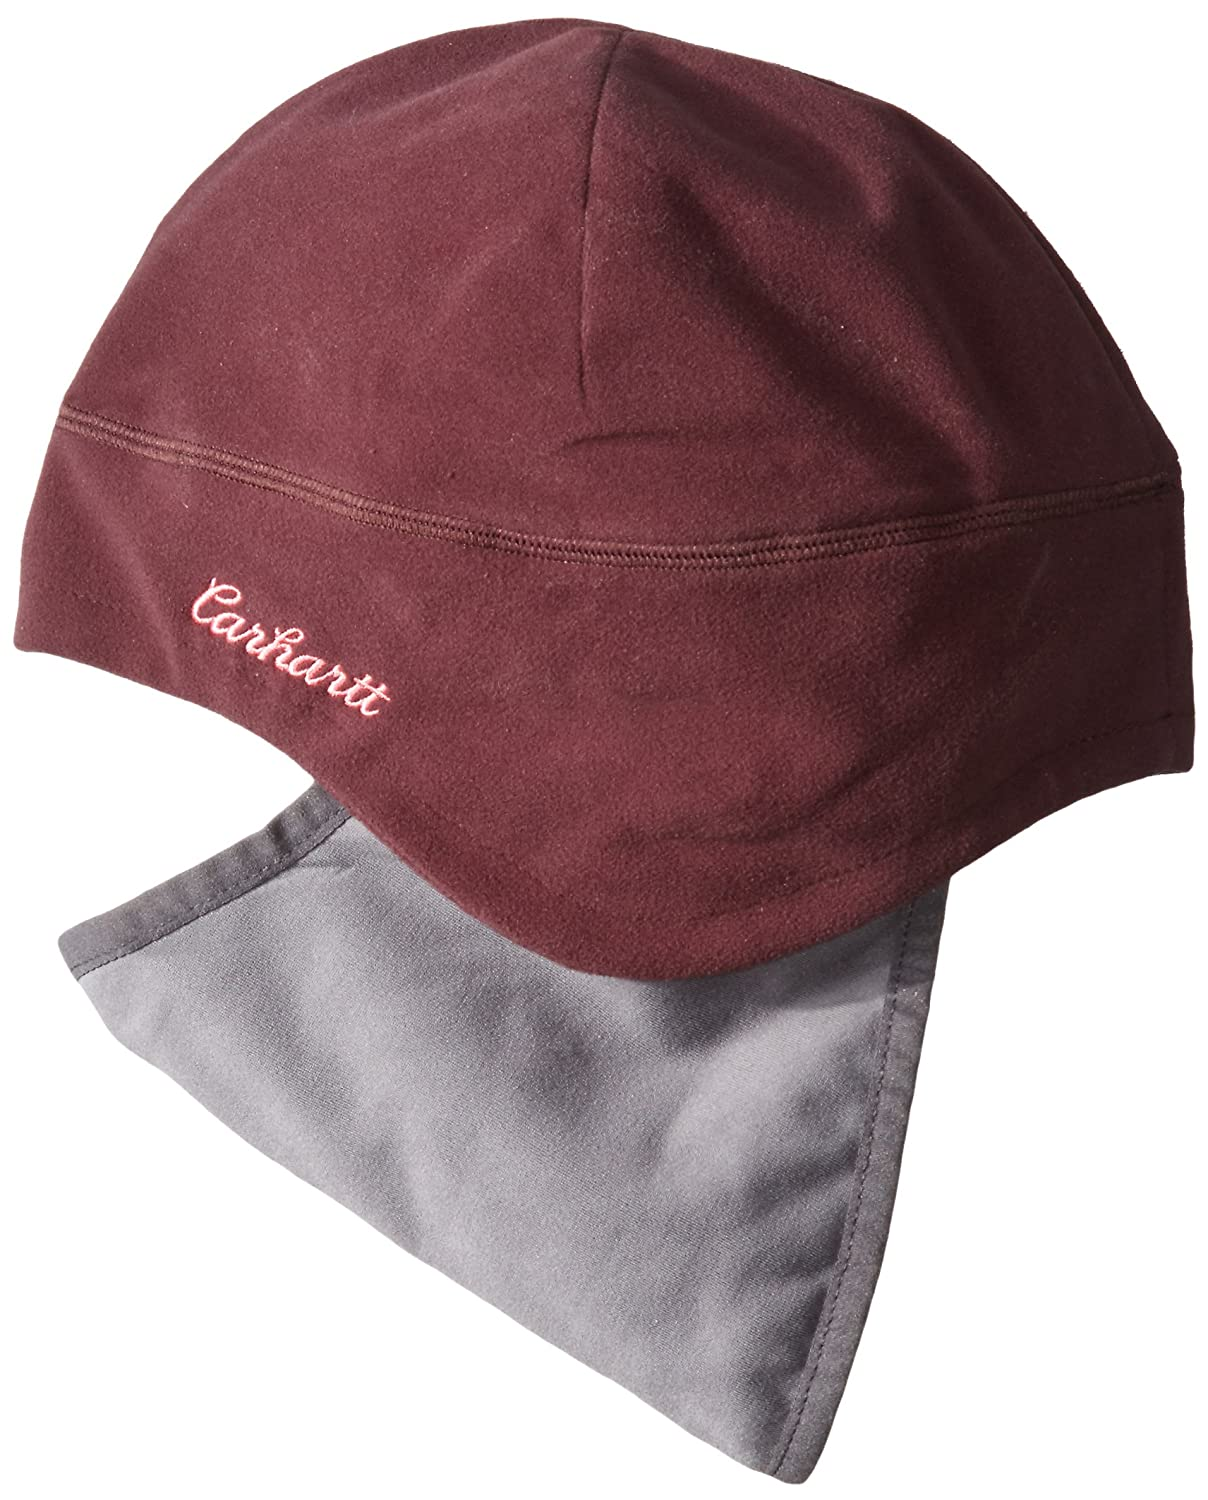 846c260ce1266 Carhartt Women s Gretna Fleece 2 in 1 Hat and Face Mask